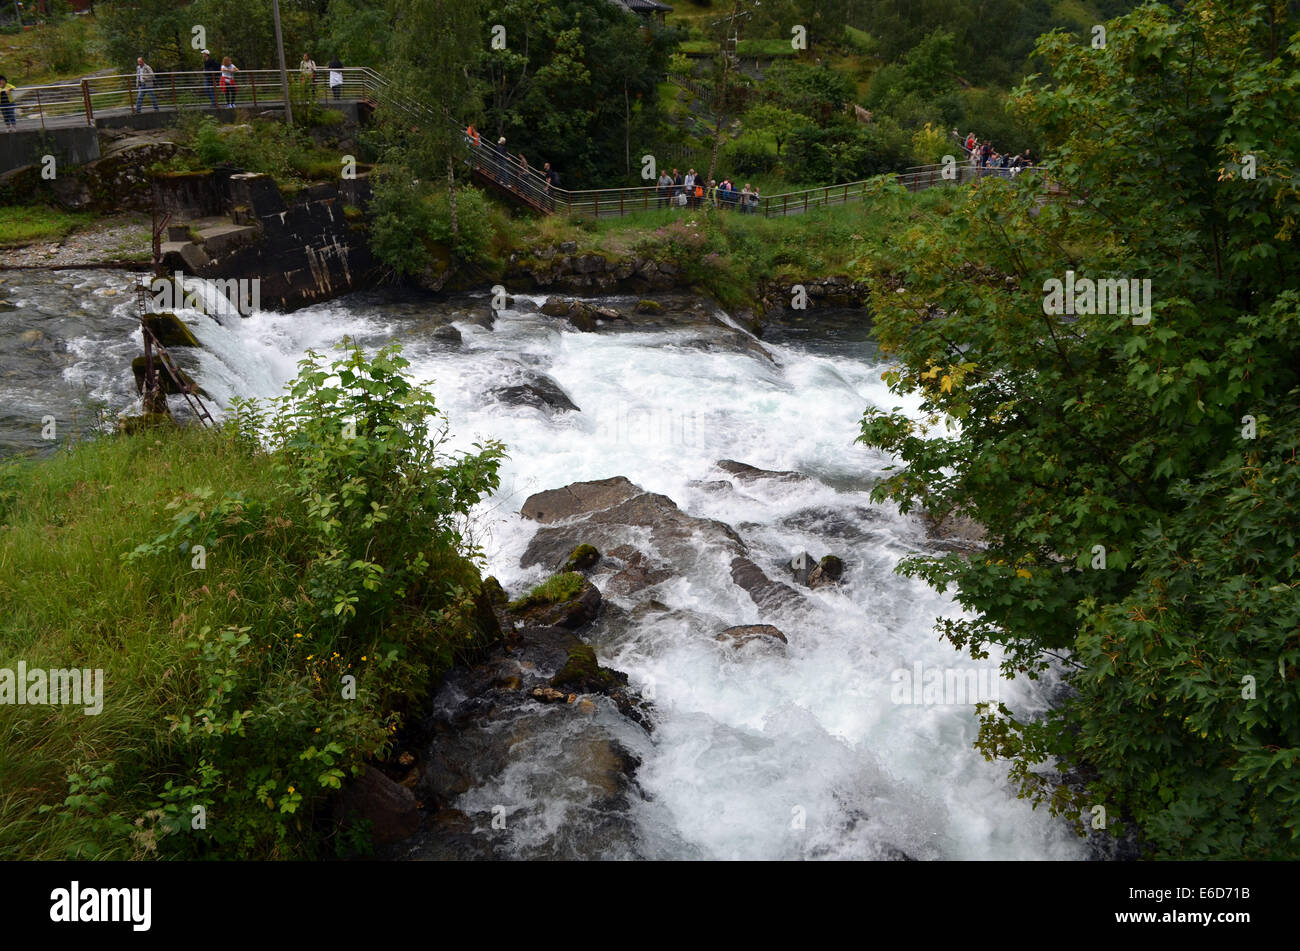 Geiranger Fford. A fast flowing stream runs alongside the cafe and buildings at Geiranger fjord. - Stock Image